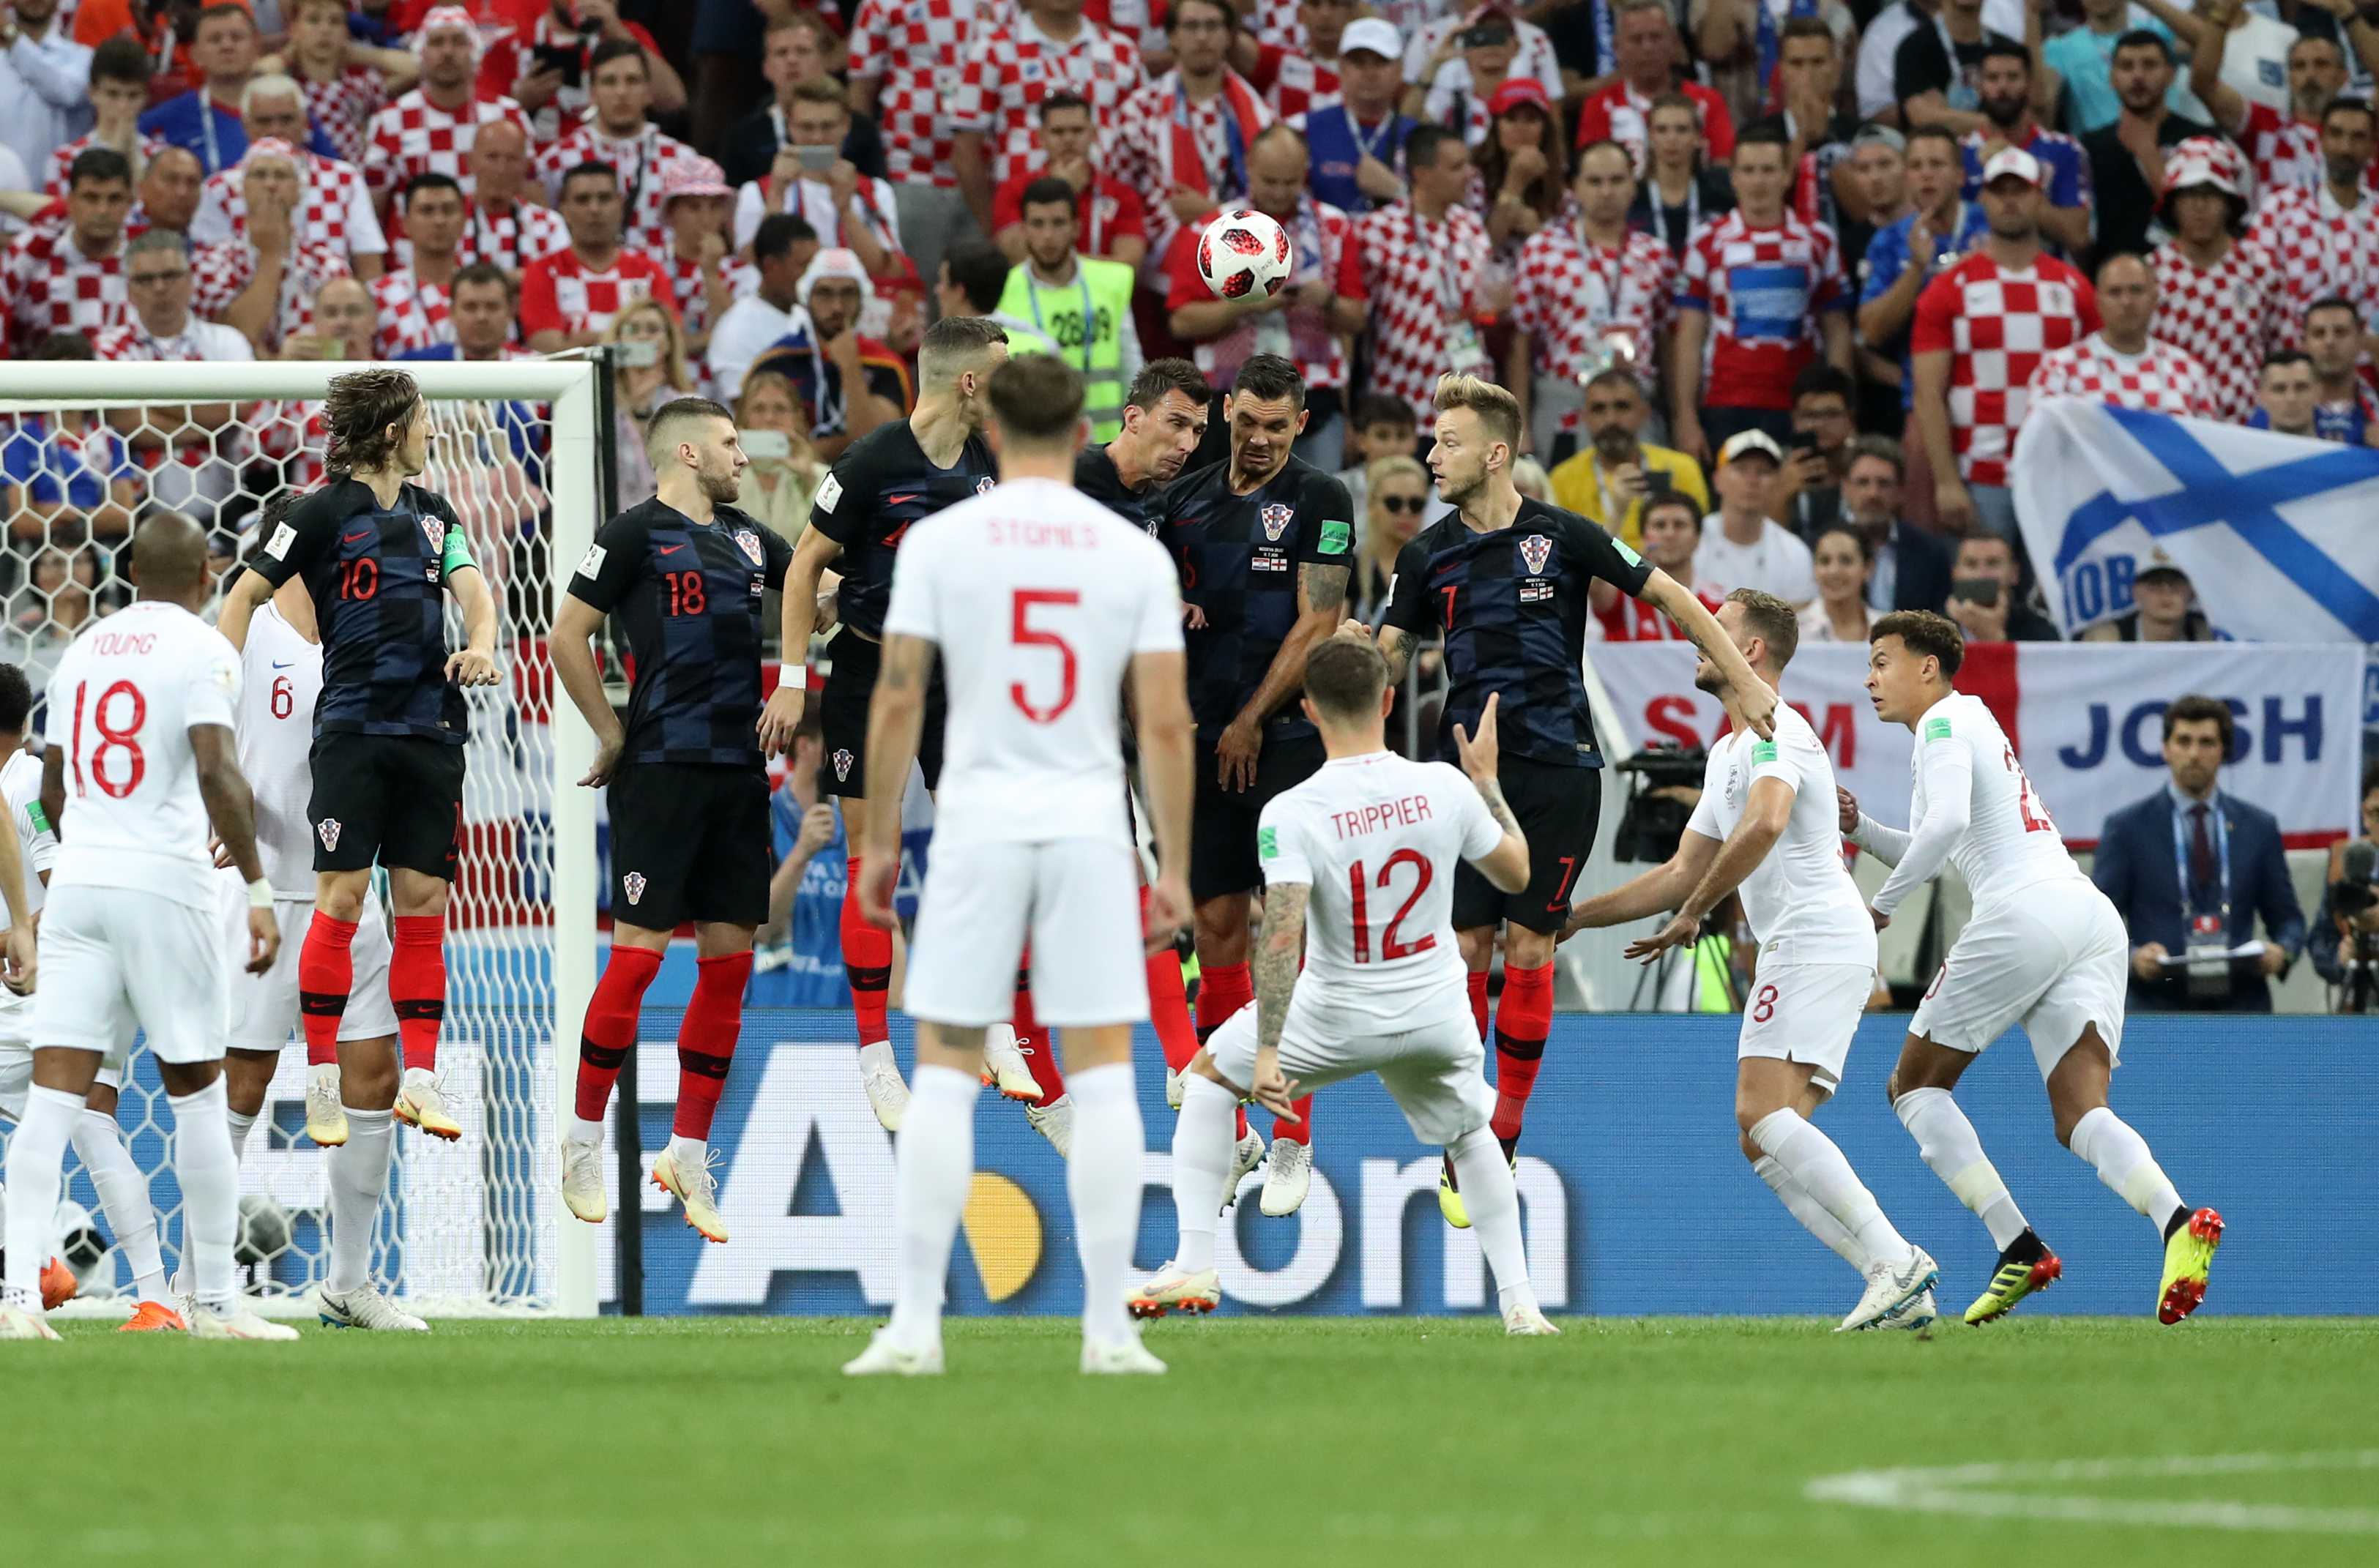 England's Kieran Trippier scores against Croatia